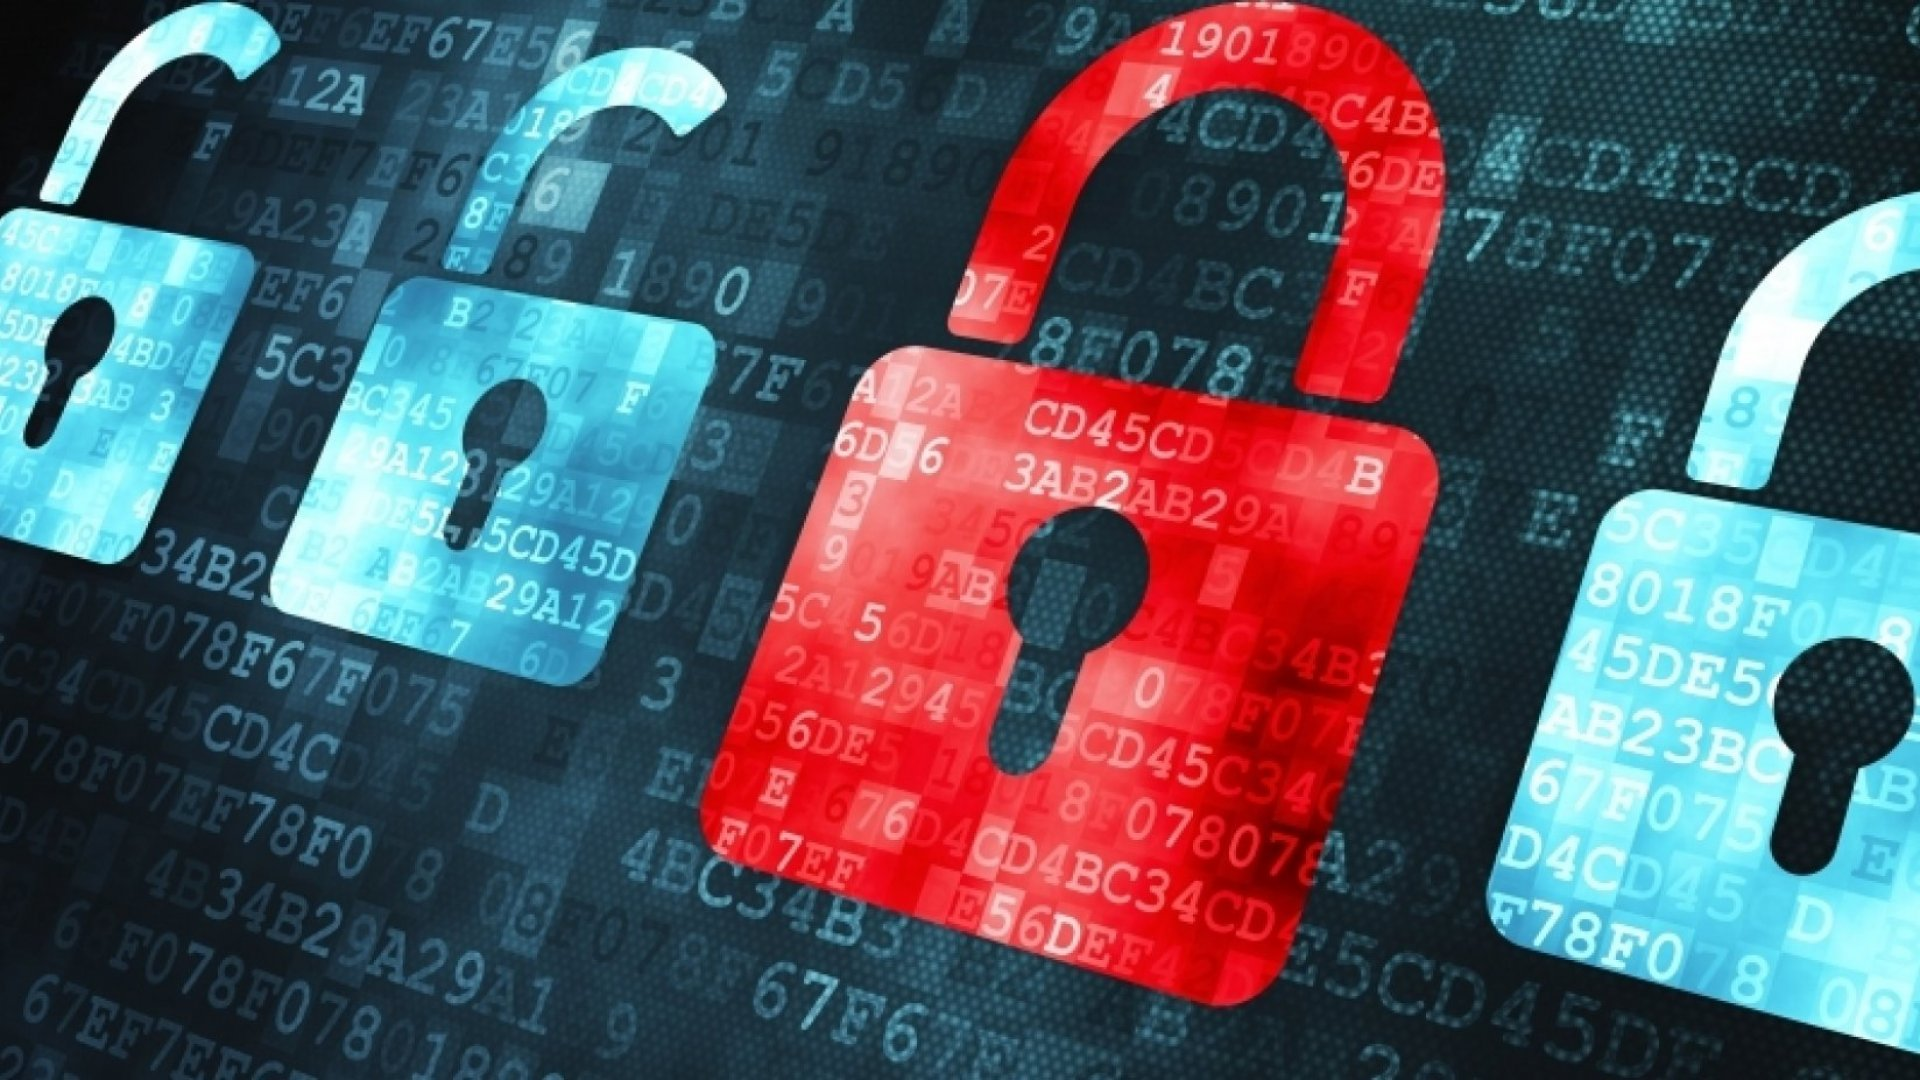 New Data Suggests Business Websites Are Becoming Less Secure From Hackers